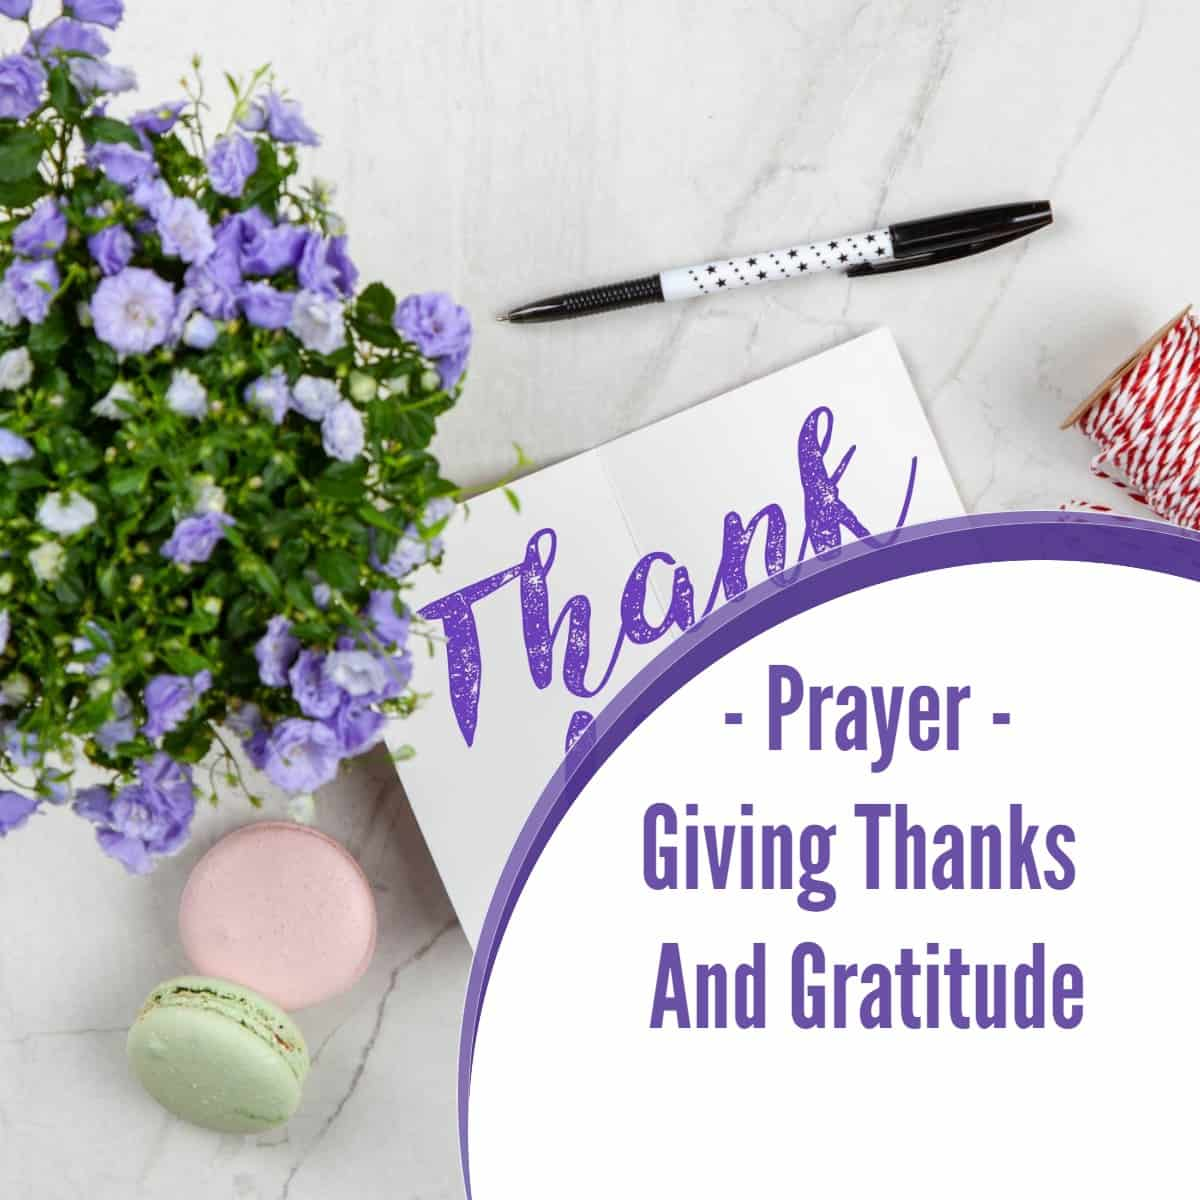 Prayer: Giving Thanks And Gratitude